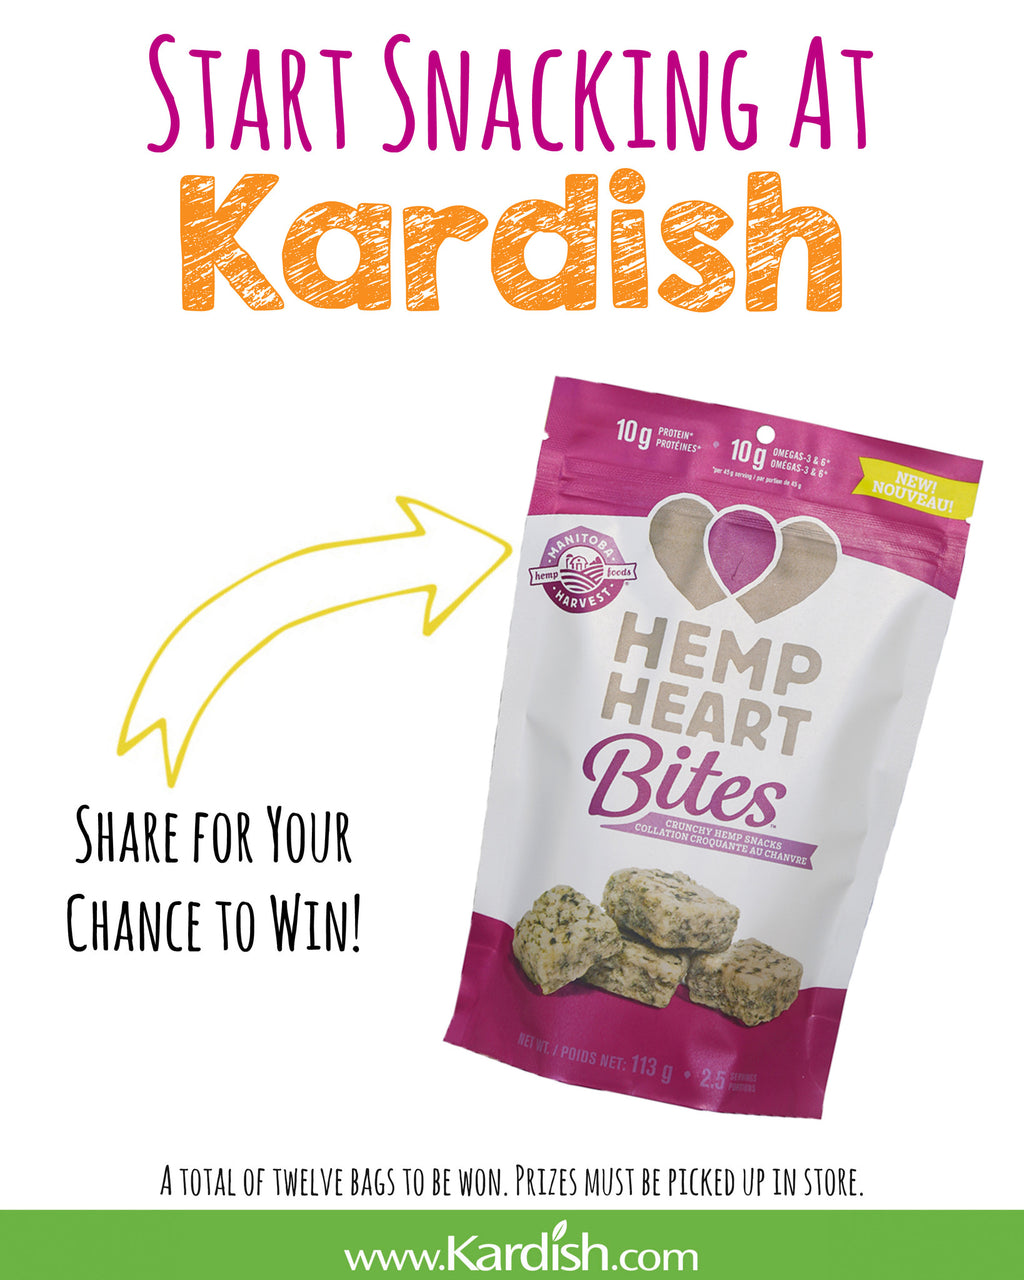 Facebook Contest: Start Snacking at Kardish